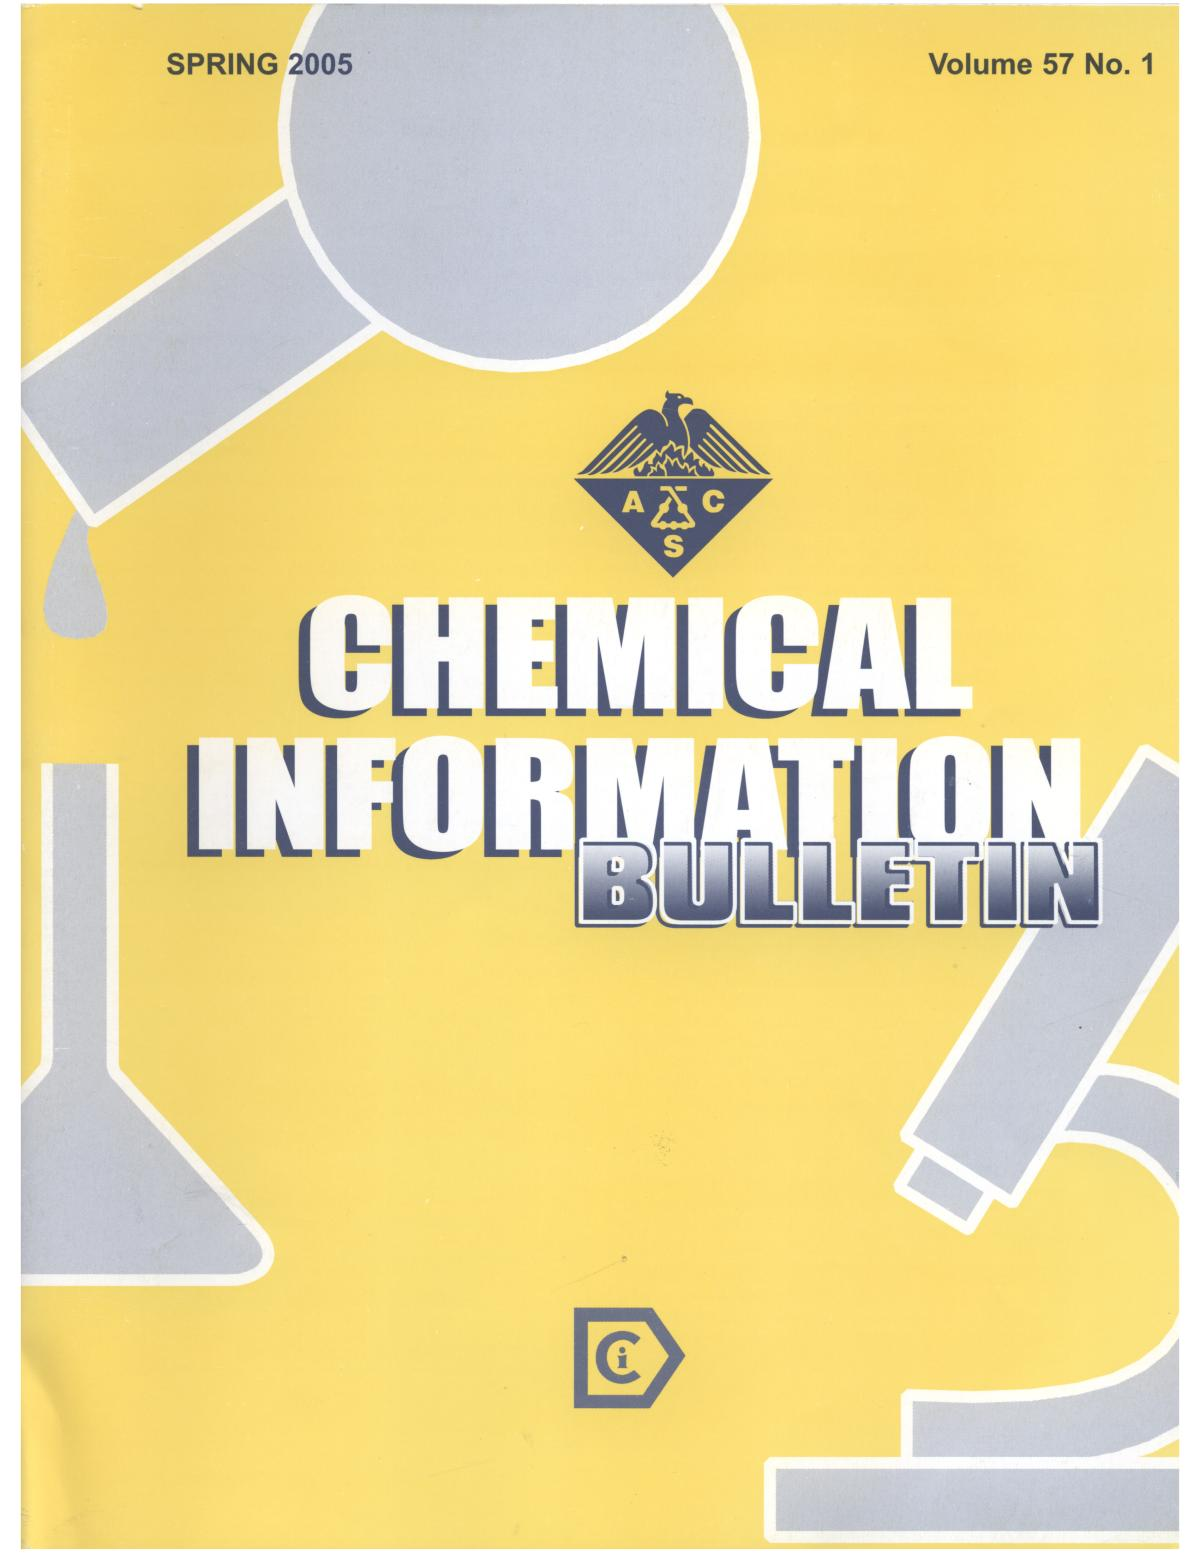 Chemical Information Bulletin, Volume 57 Number 1, Spring 2005                                                                                                      Front Cover